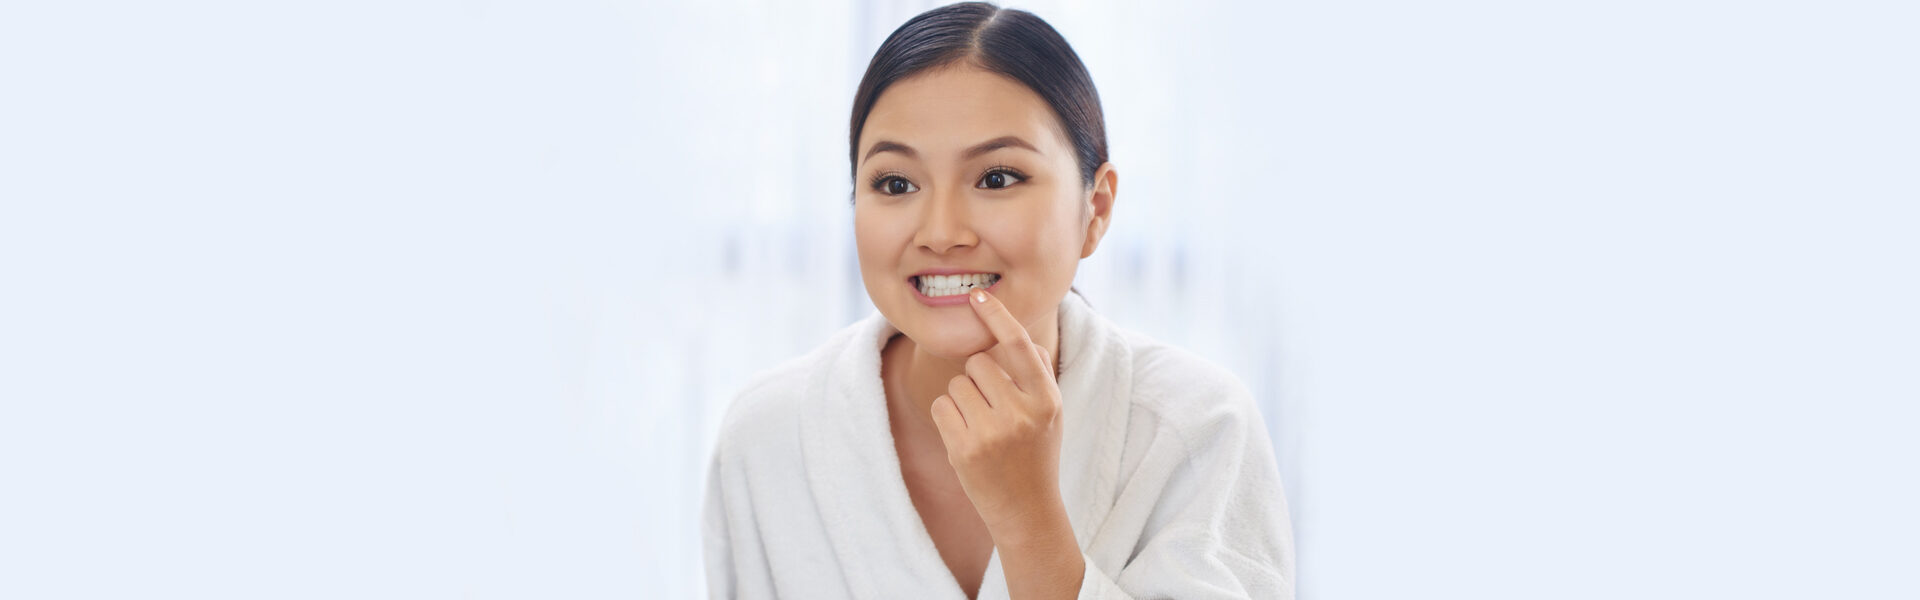 Wisdom Tooth Extractions in Union, NJ